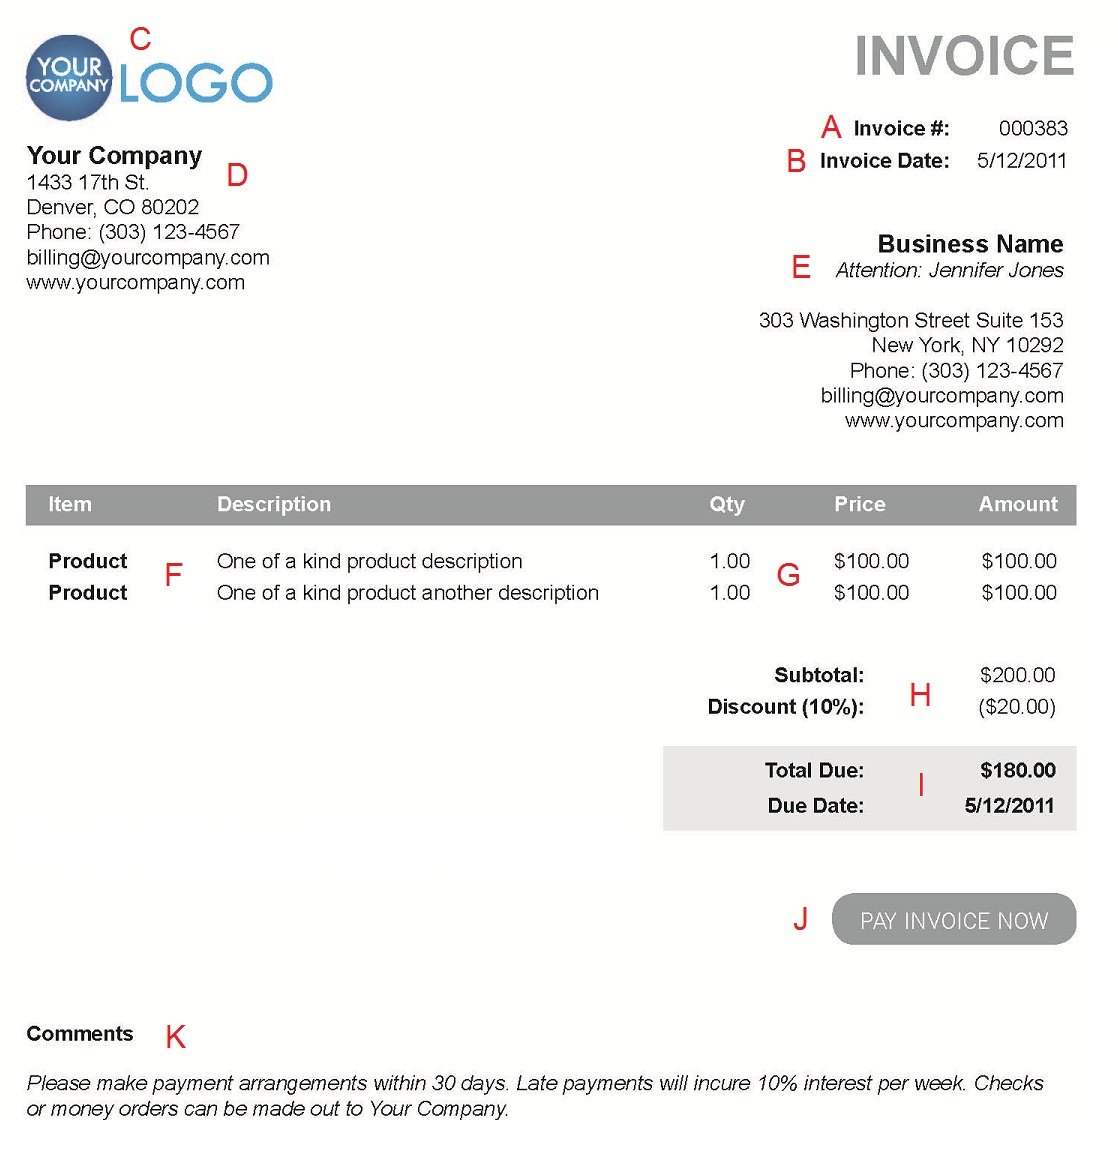 Ultrablogus  Personable The  Different Sections Of An Electronic Payment Invoice With Foxy A  With Delightful Google Docs Invoice Generator Also Free Software To Create Invoices In Addition Printable Invoice Templates And Vehicle Factory Invoice As Well As Personalized Invoices Additionally Ups Invoice Scam From Paysimplecom With Ultrablogus  Foxy The  Different Sections Of An Electronic Payment Invoice With Delightful A  And Personable Google Docs Invoice Generator Also Free Software To Create Invoices In Addition Printable Invoice Templates From Paysimplecom